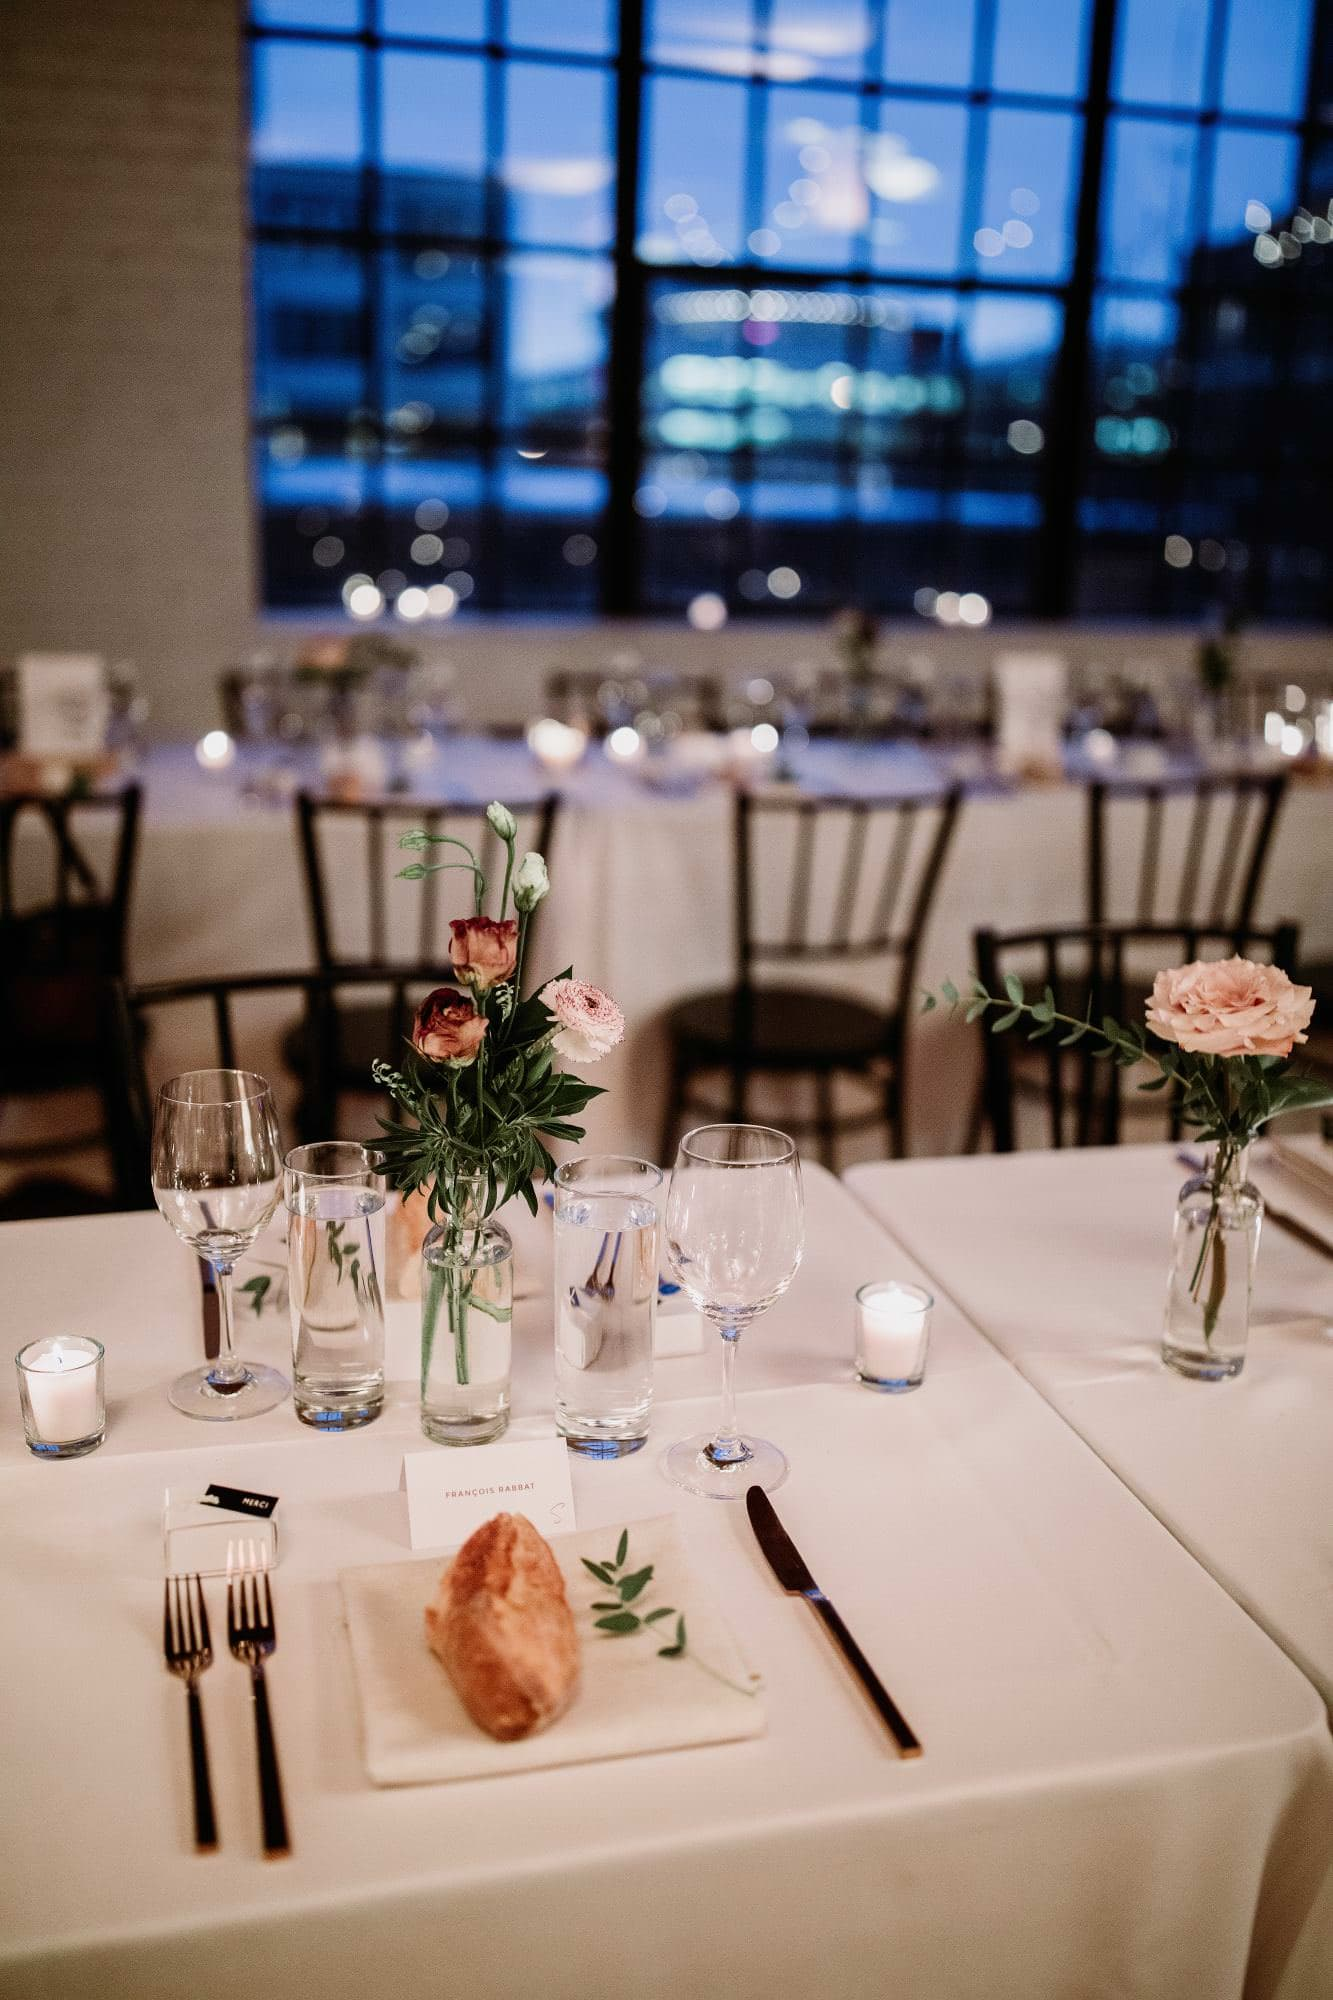 Florals at a table at an industrial wedding at Parisian Luandry by espace 3550